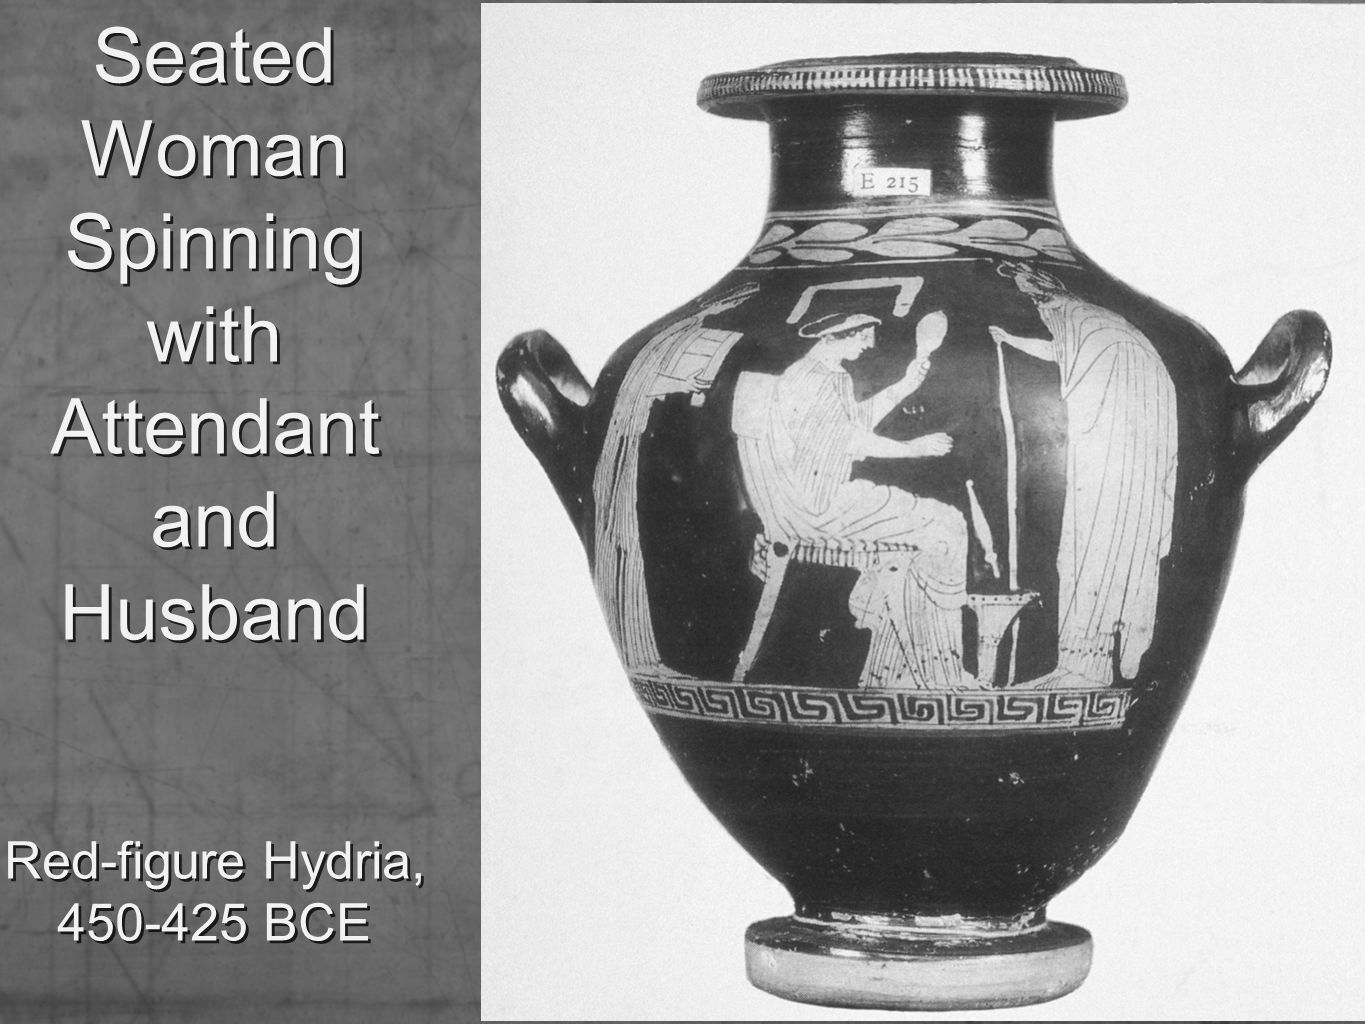 Seated Woman Spinning with Attendant and Husband Red-figure Hydria, 450-425 BCE